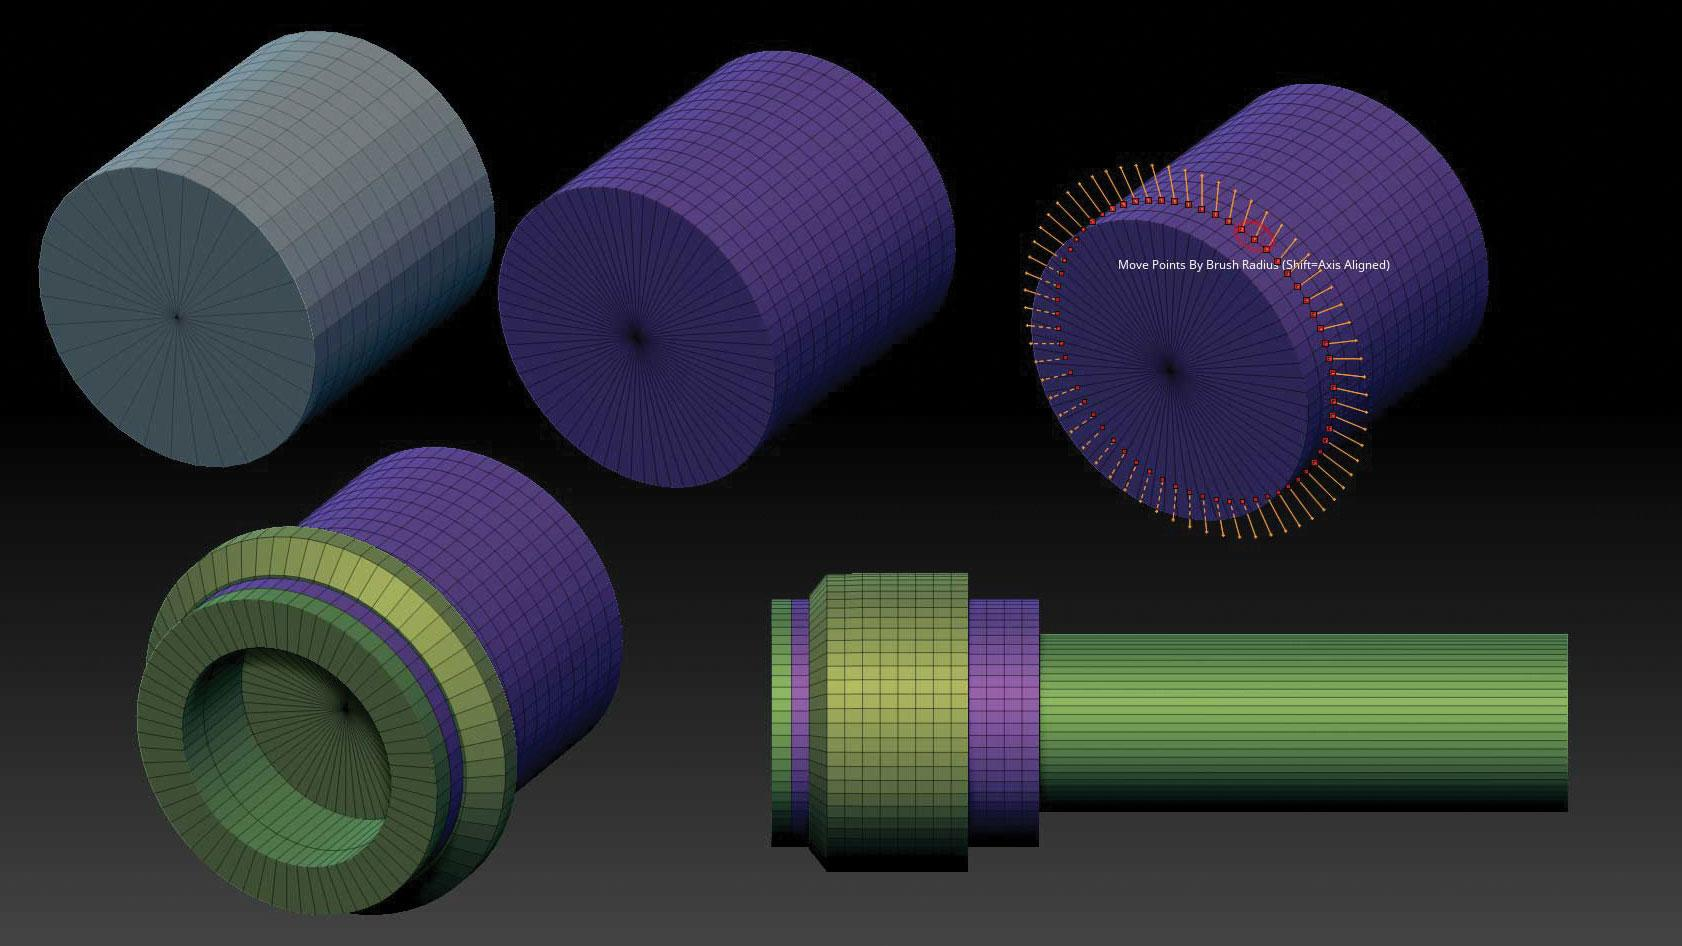 Cylinder3D jet engine 3D models